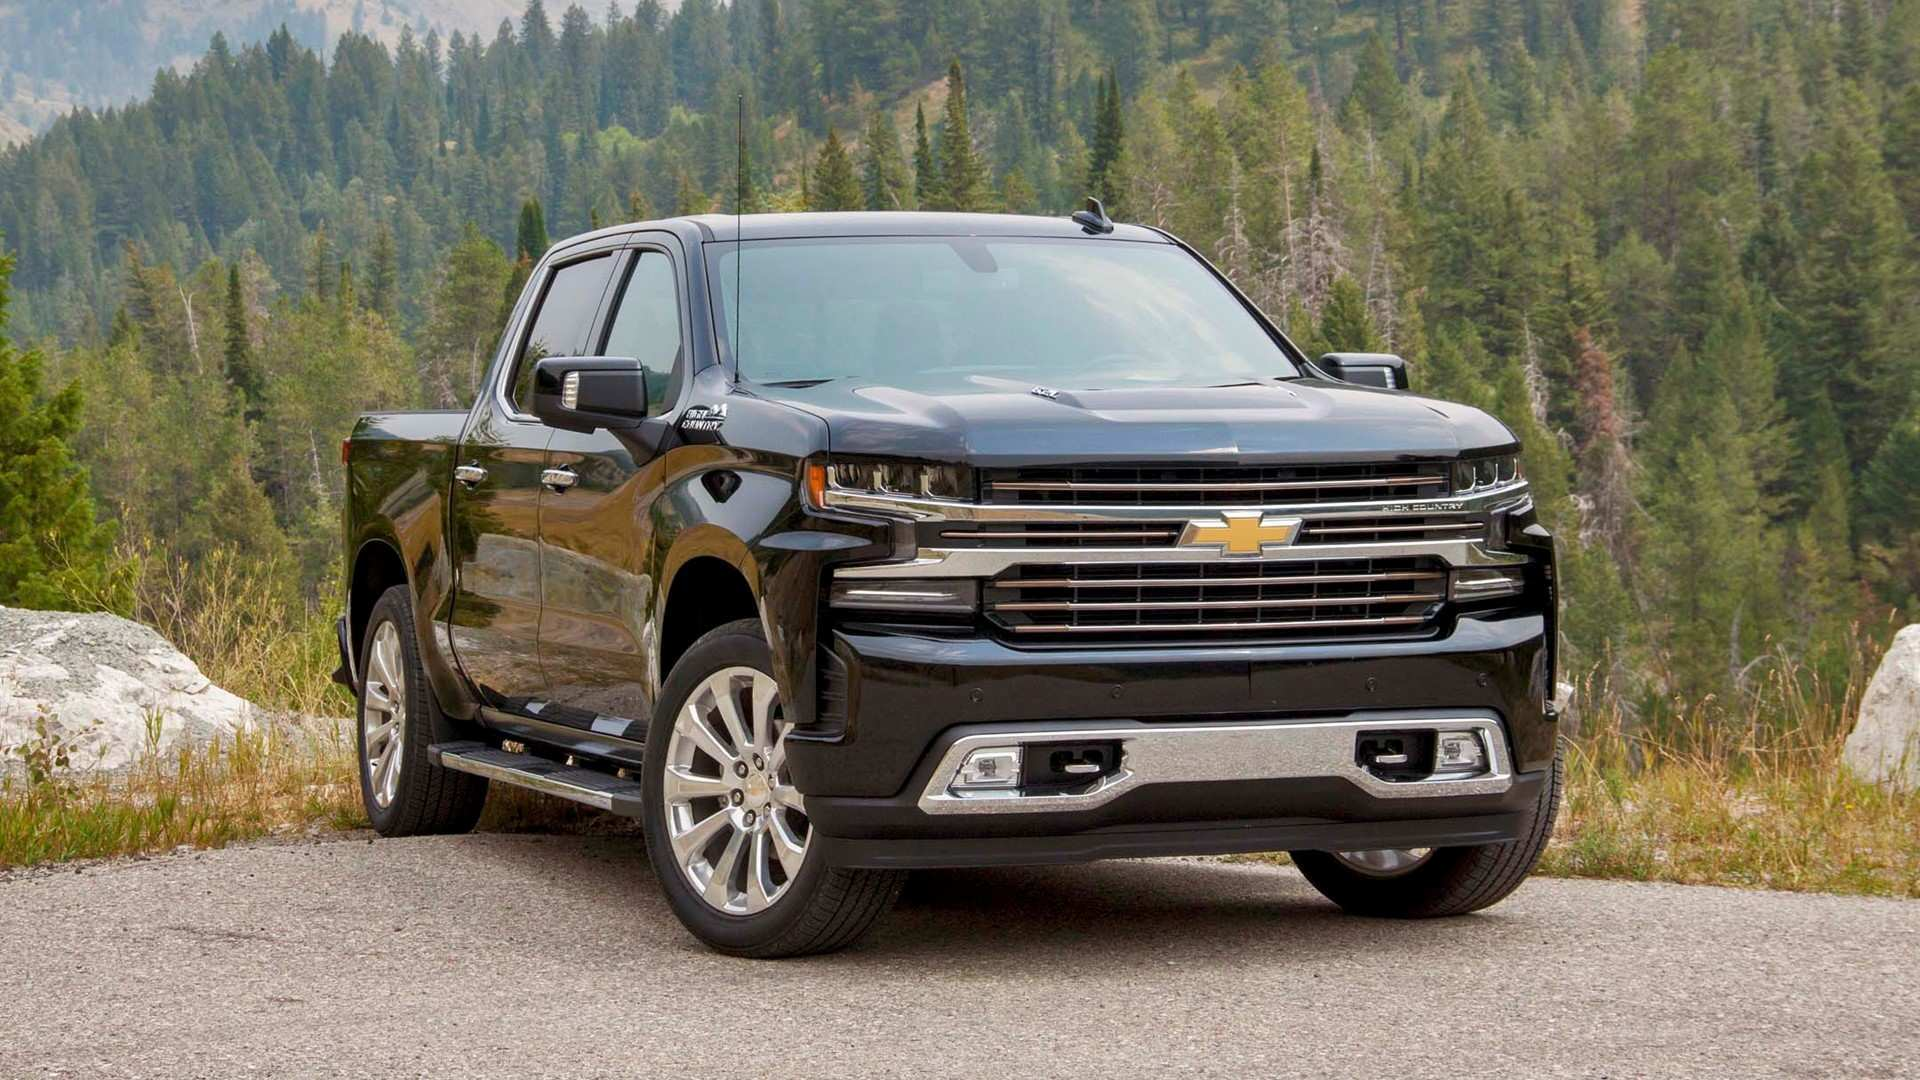 79 Gallery of The Chevrolet Silverado 2019 Diesel First Drive History for The Chevrolet Silverado 2019 Diesel First Drive